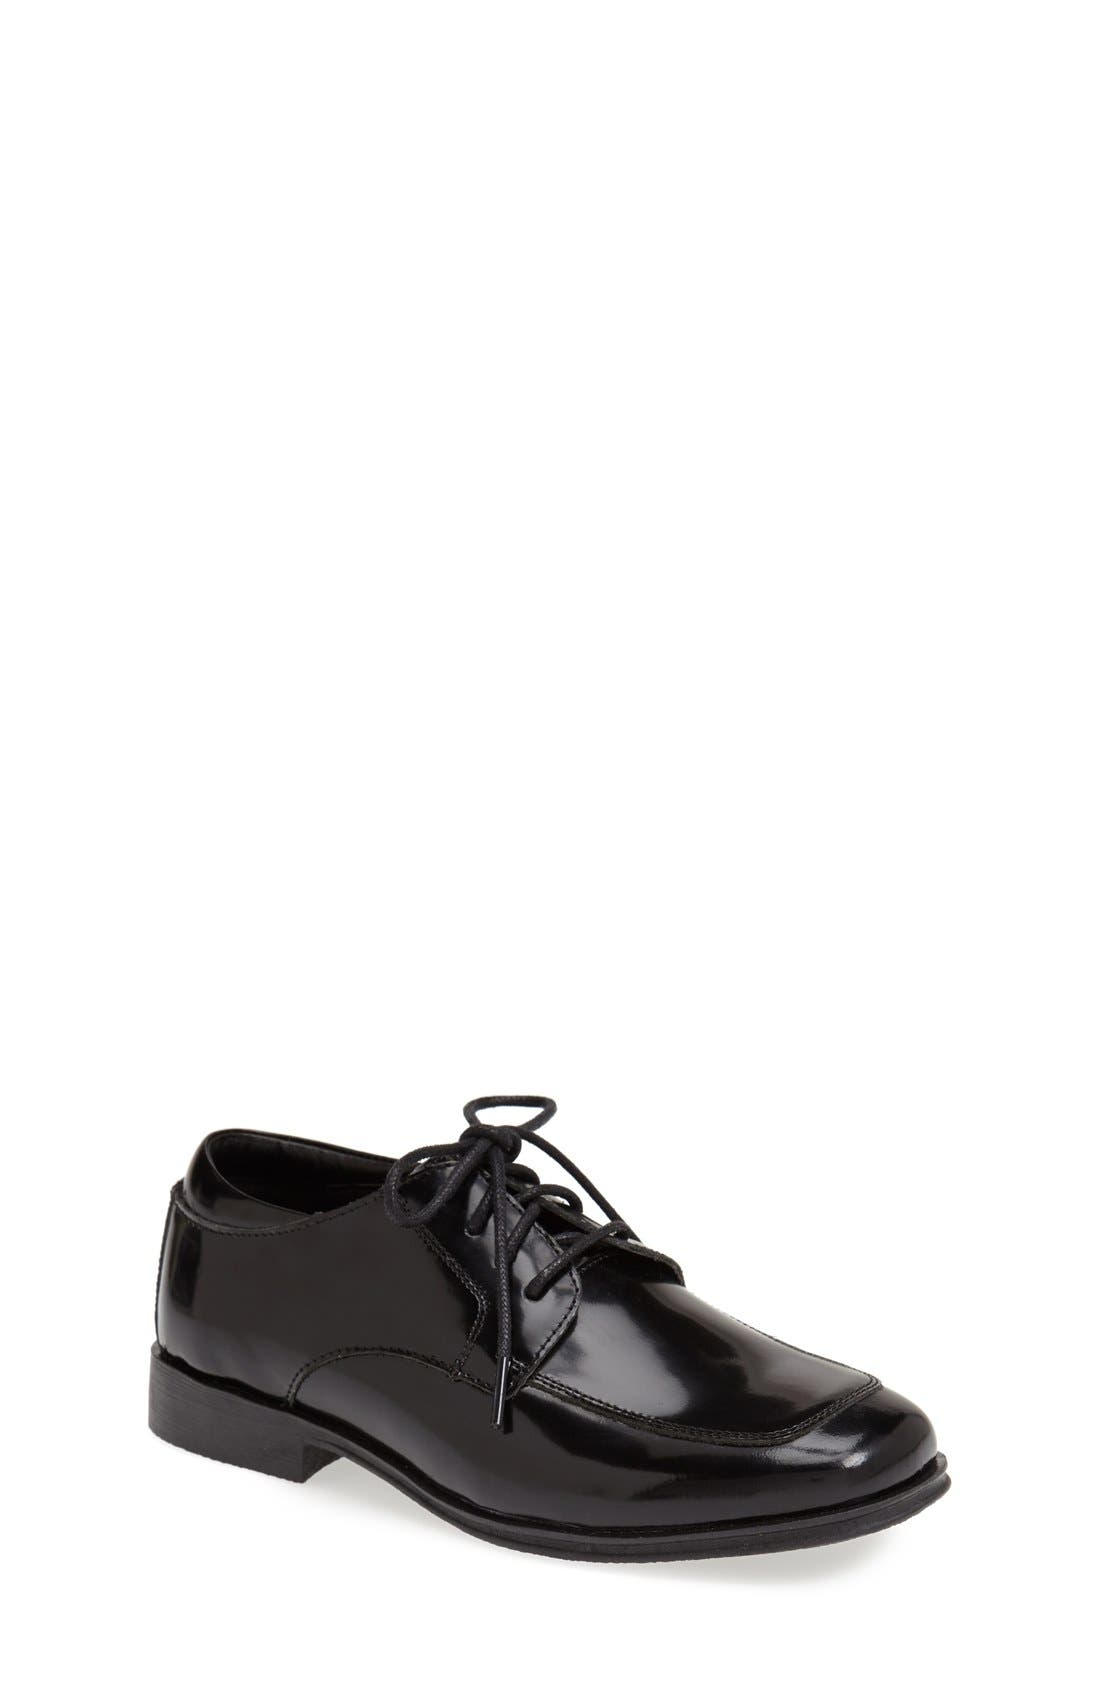 Kid Club Oxford,                         Main,                         color, Black